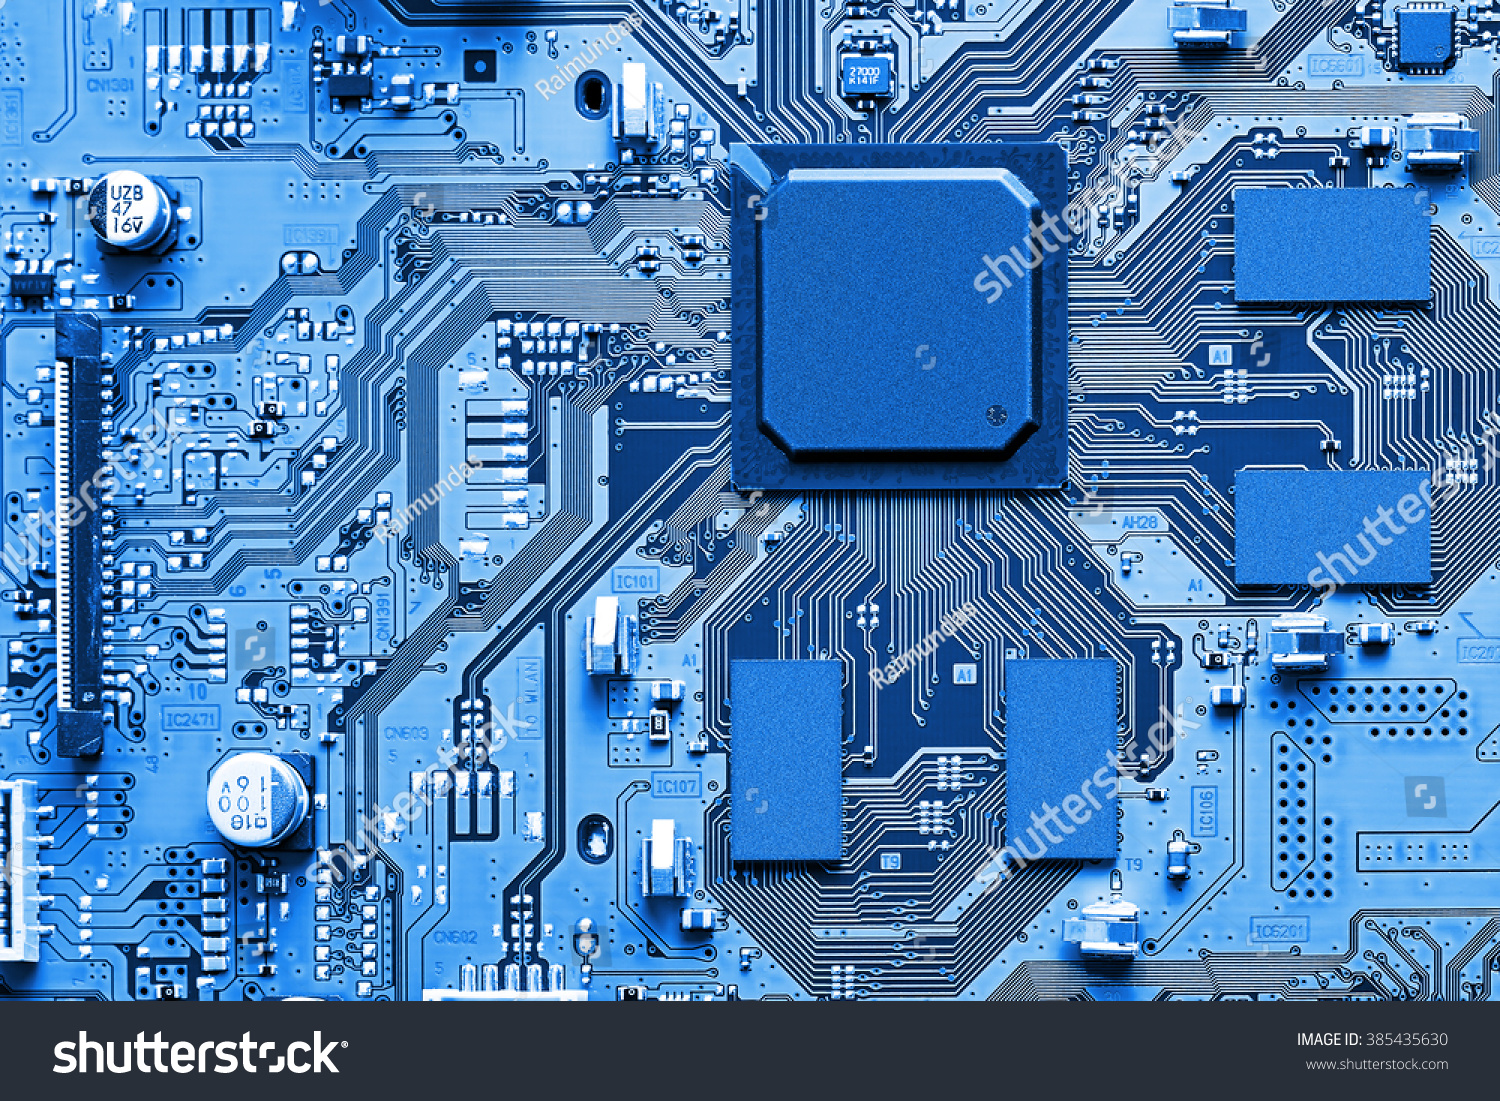 Electronic Circuit Board Close Up Stock Photo Edit Now 385435630 Free Image Of Printed Sciencestockphotoscom